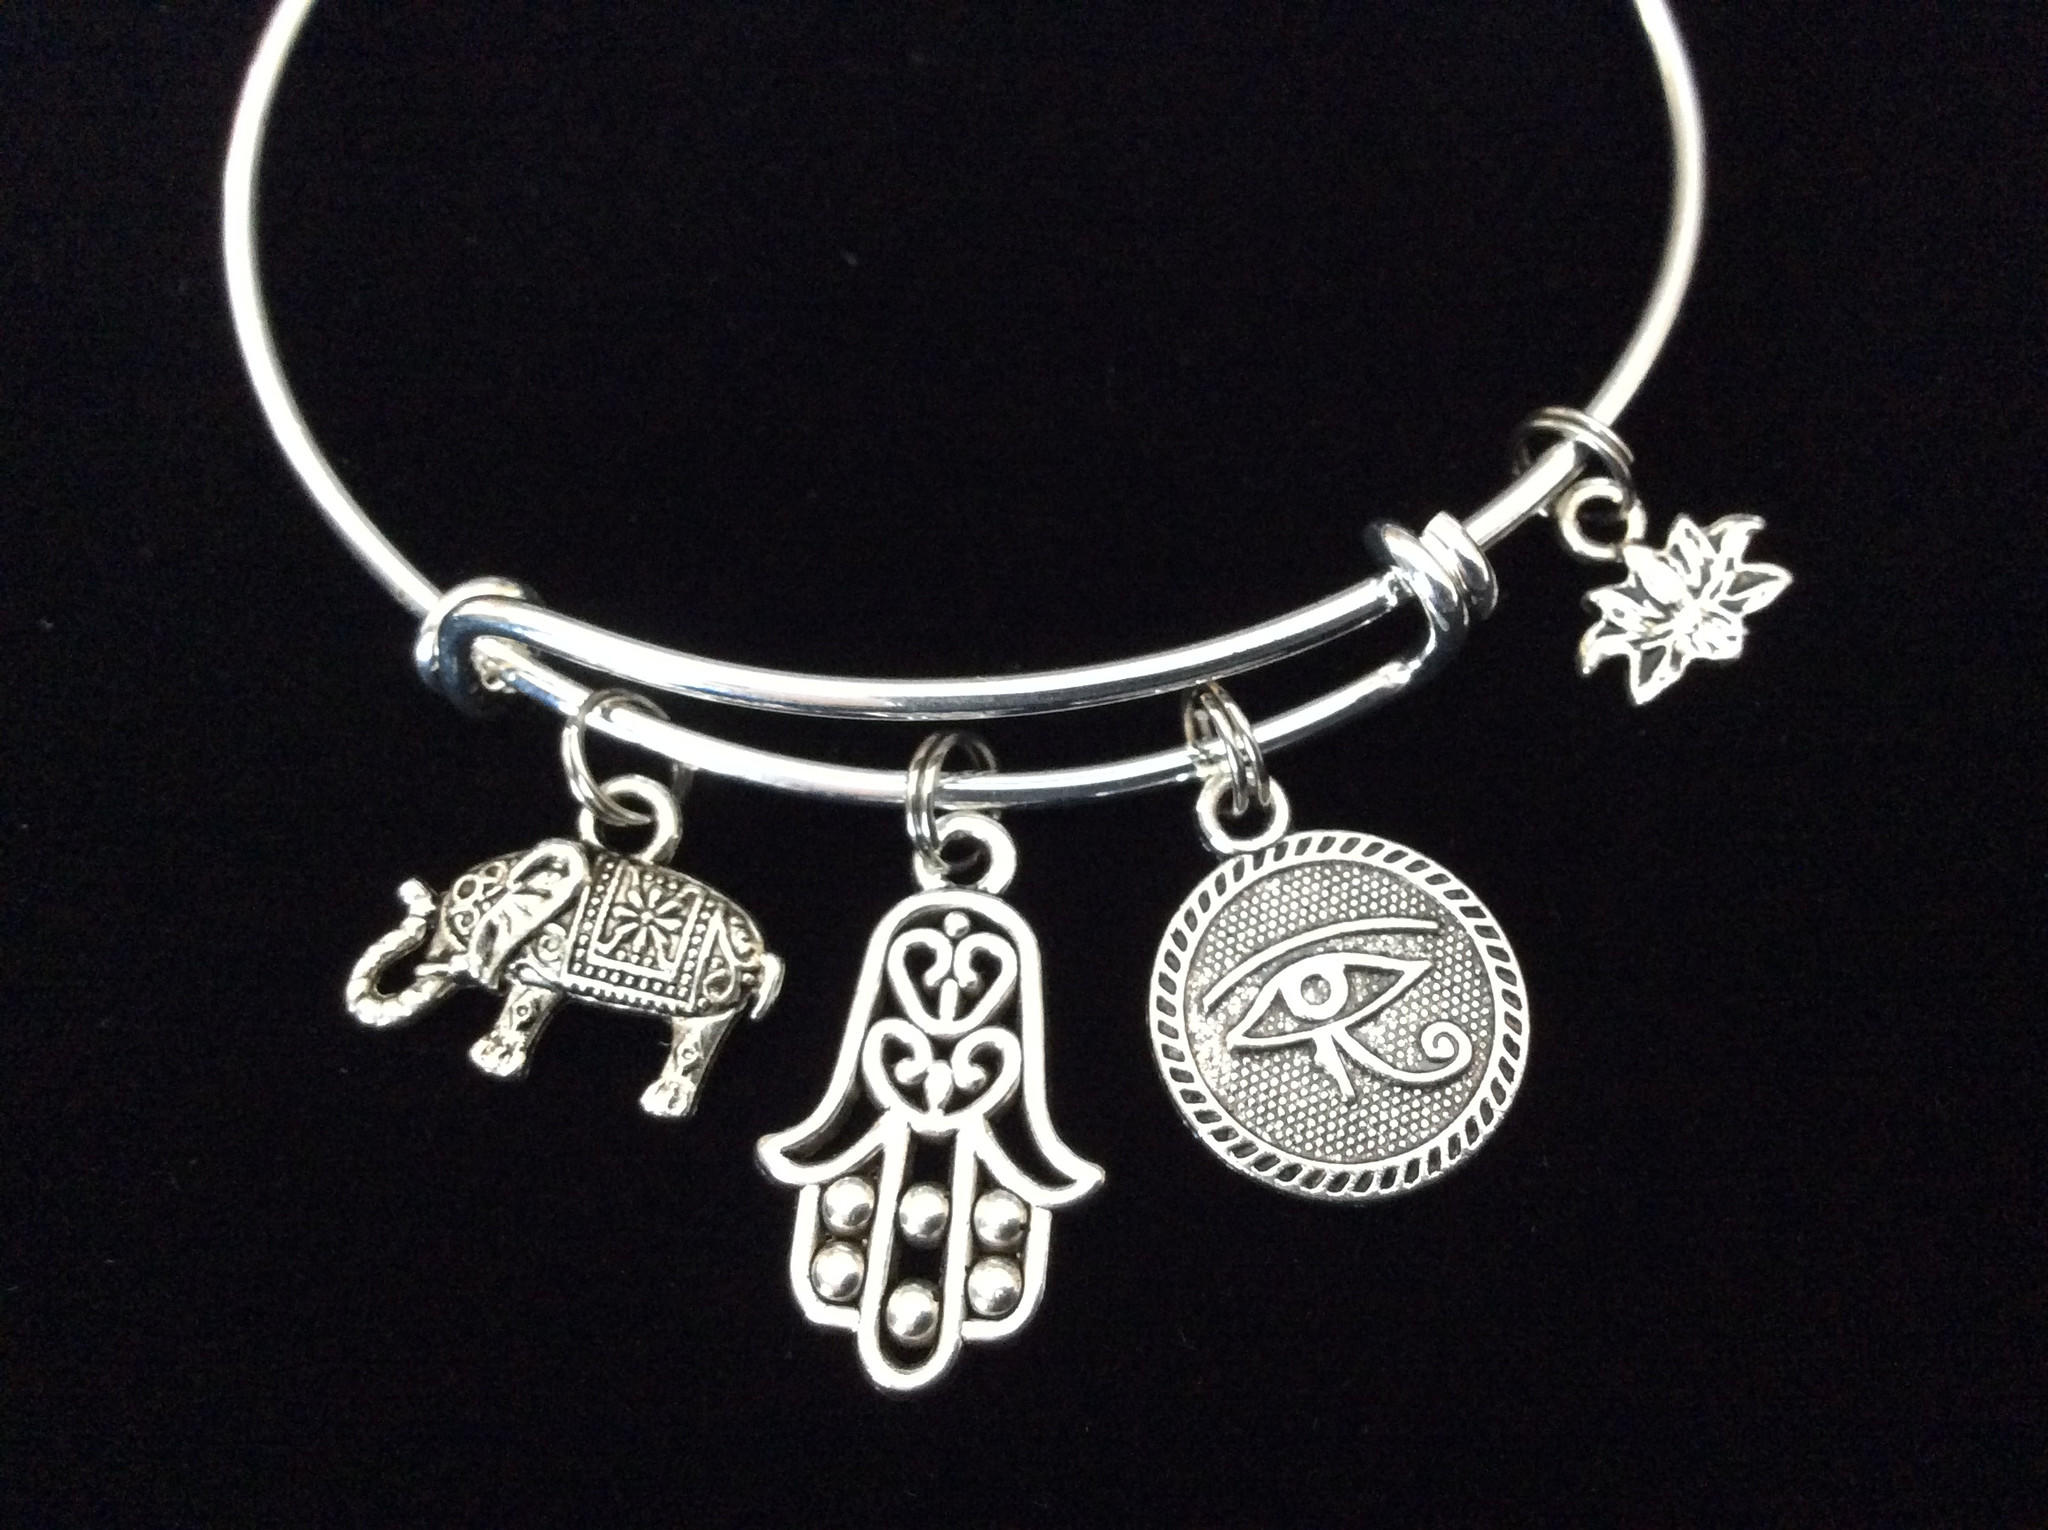 Image of Luck, Protection, New Beginnings, Enlightenment Yoga Inspired Charms on a Silver Adjustable Bangle Charm Bracelet Expandable